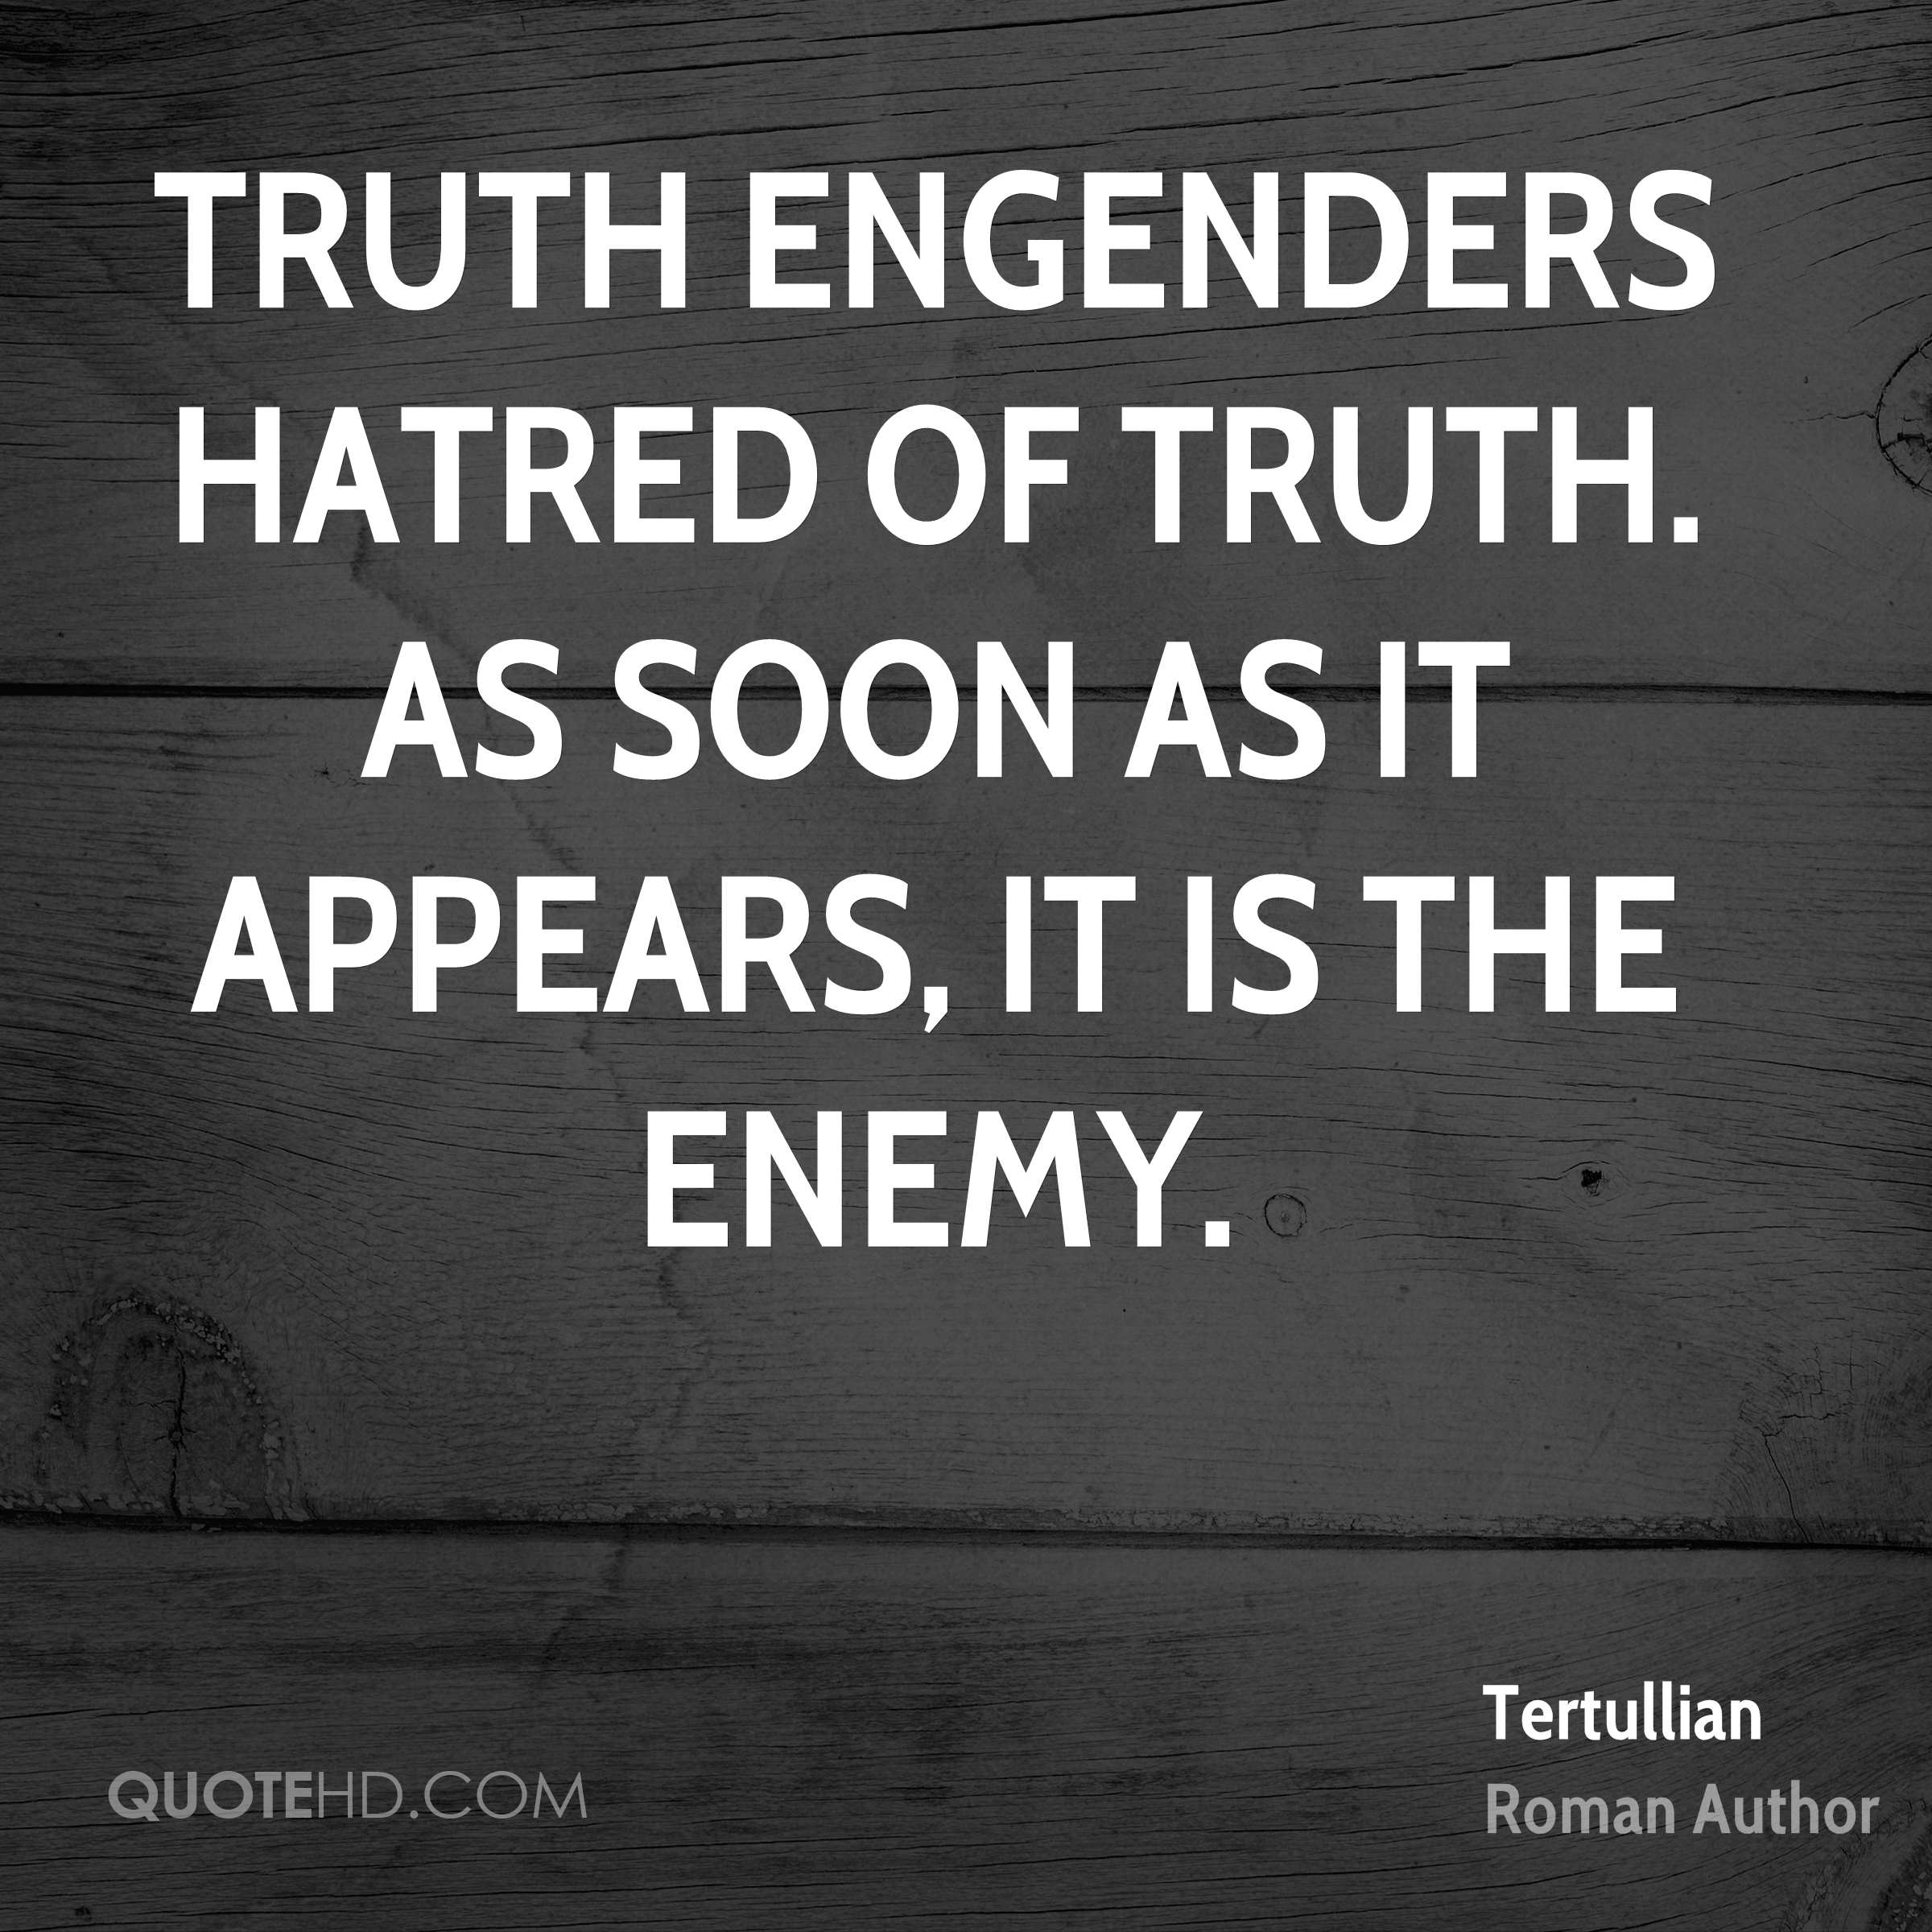 Truth engenders hatred of truth. As soon as it appears, it is the enemy.